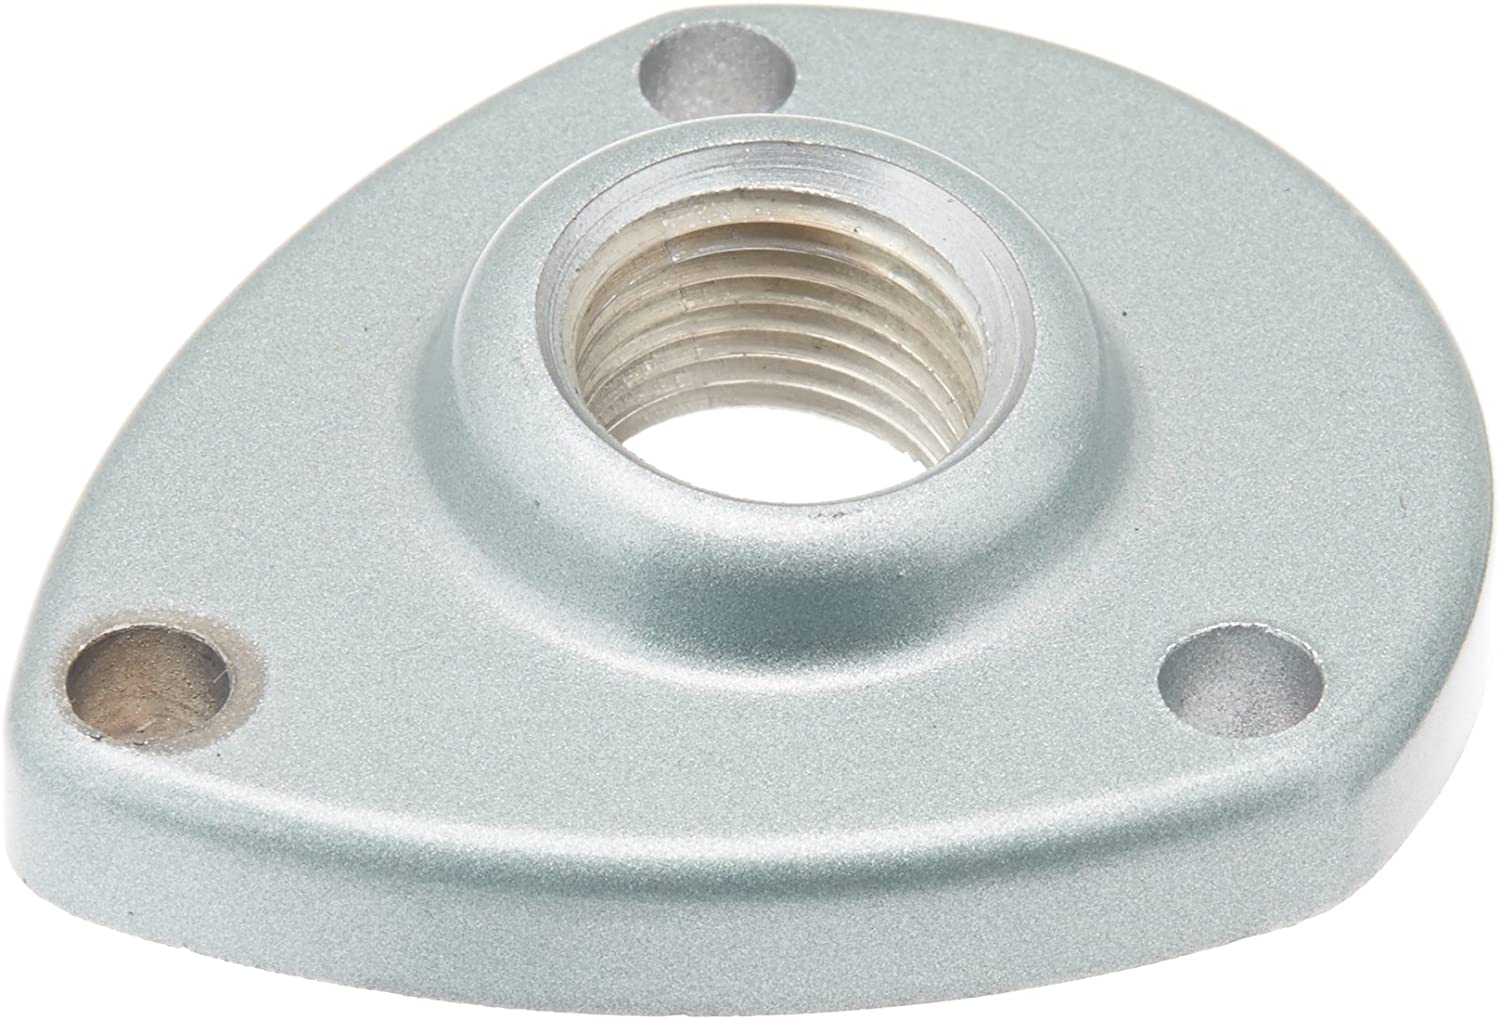 Hitachi 878311 Replacement Part Cap for Sales results No. 1 Power Max 46% OFF Tool